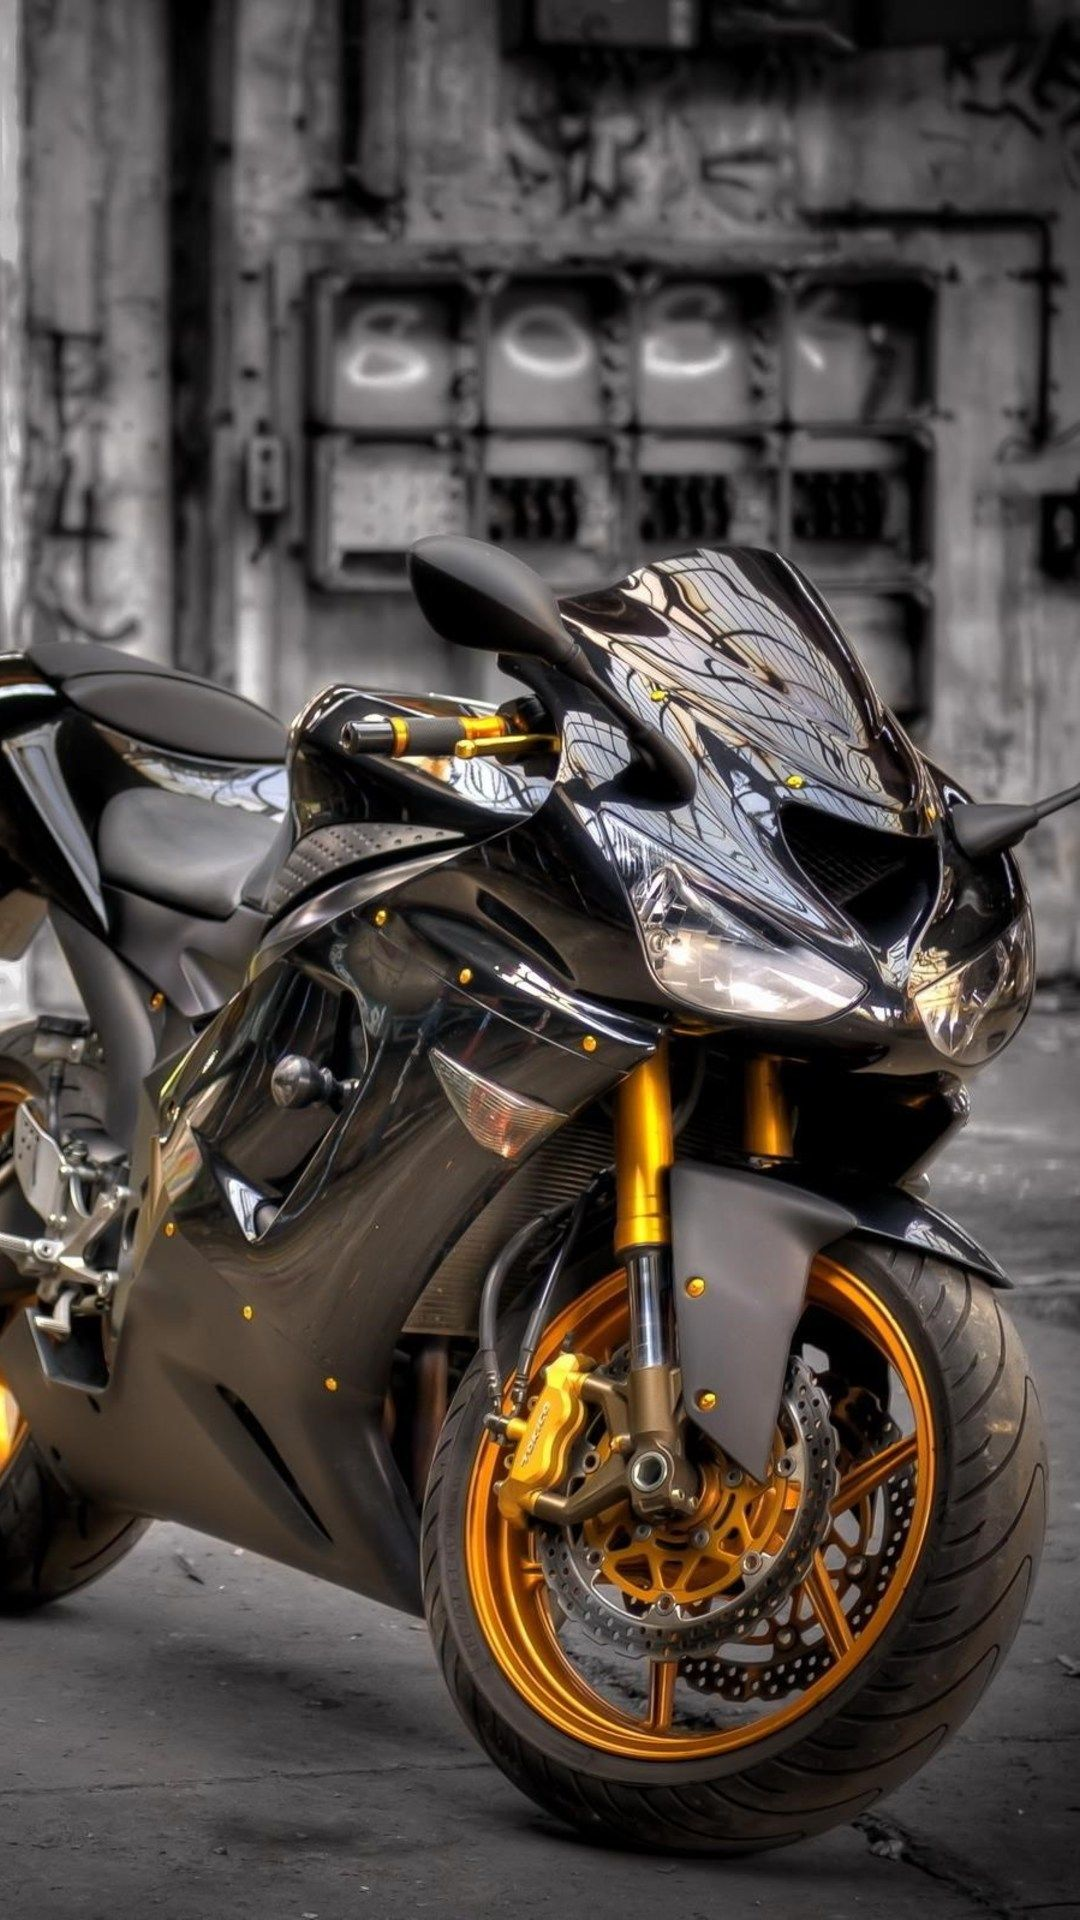 Kawasaki Zx6r In 1080x1920 Resolution Motorcycle Wallpaper Kawasaki Zx6r Moto Wallpapers